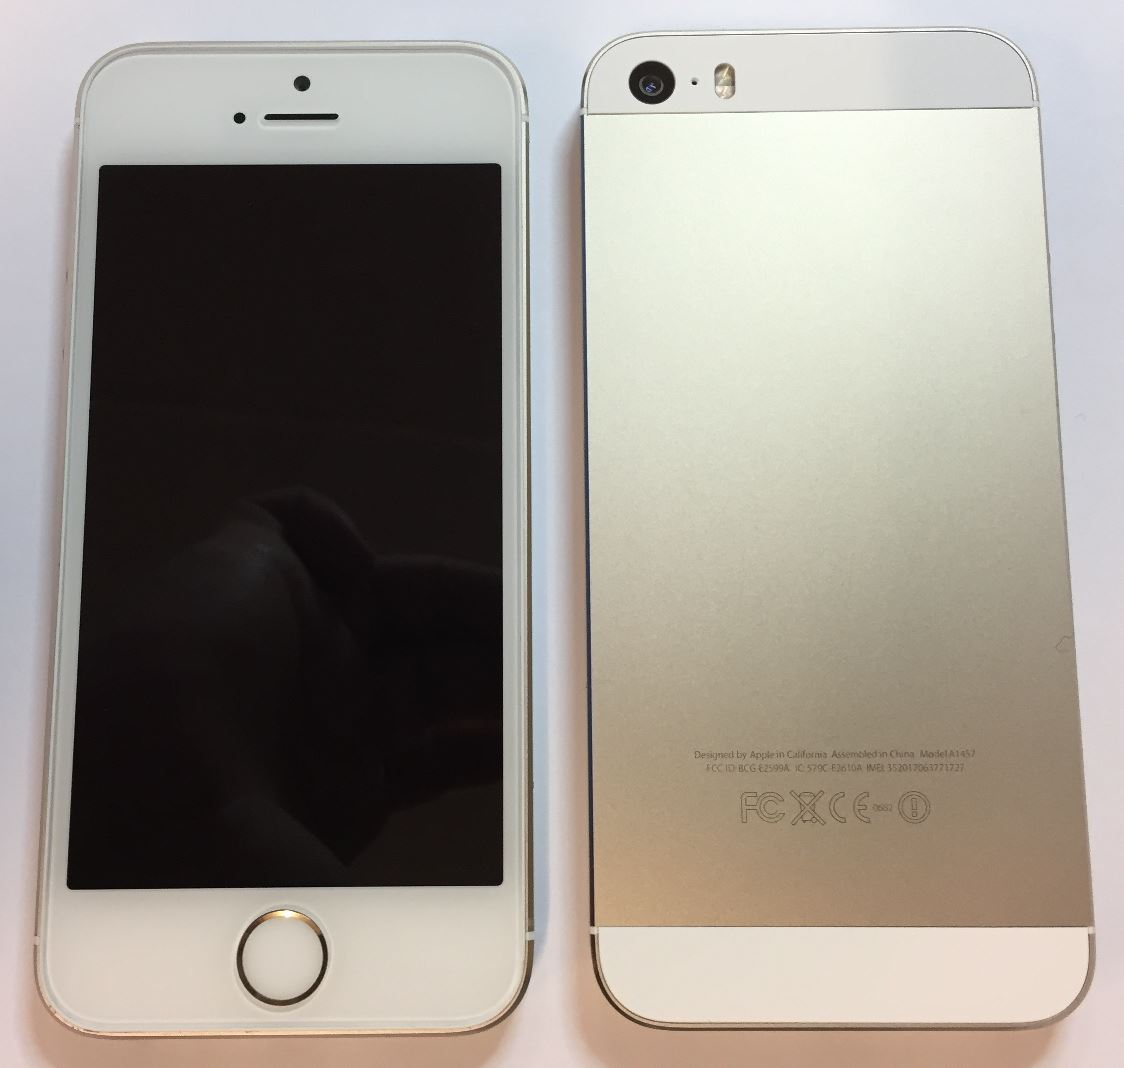 apple iphone 5s 32gb gold unlocked refurbished grade a condition ebay. Black Bedroom Furniture Sets. Home Design Ideas